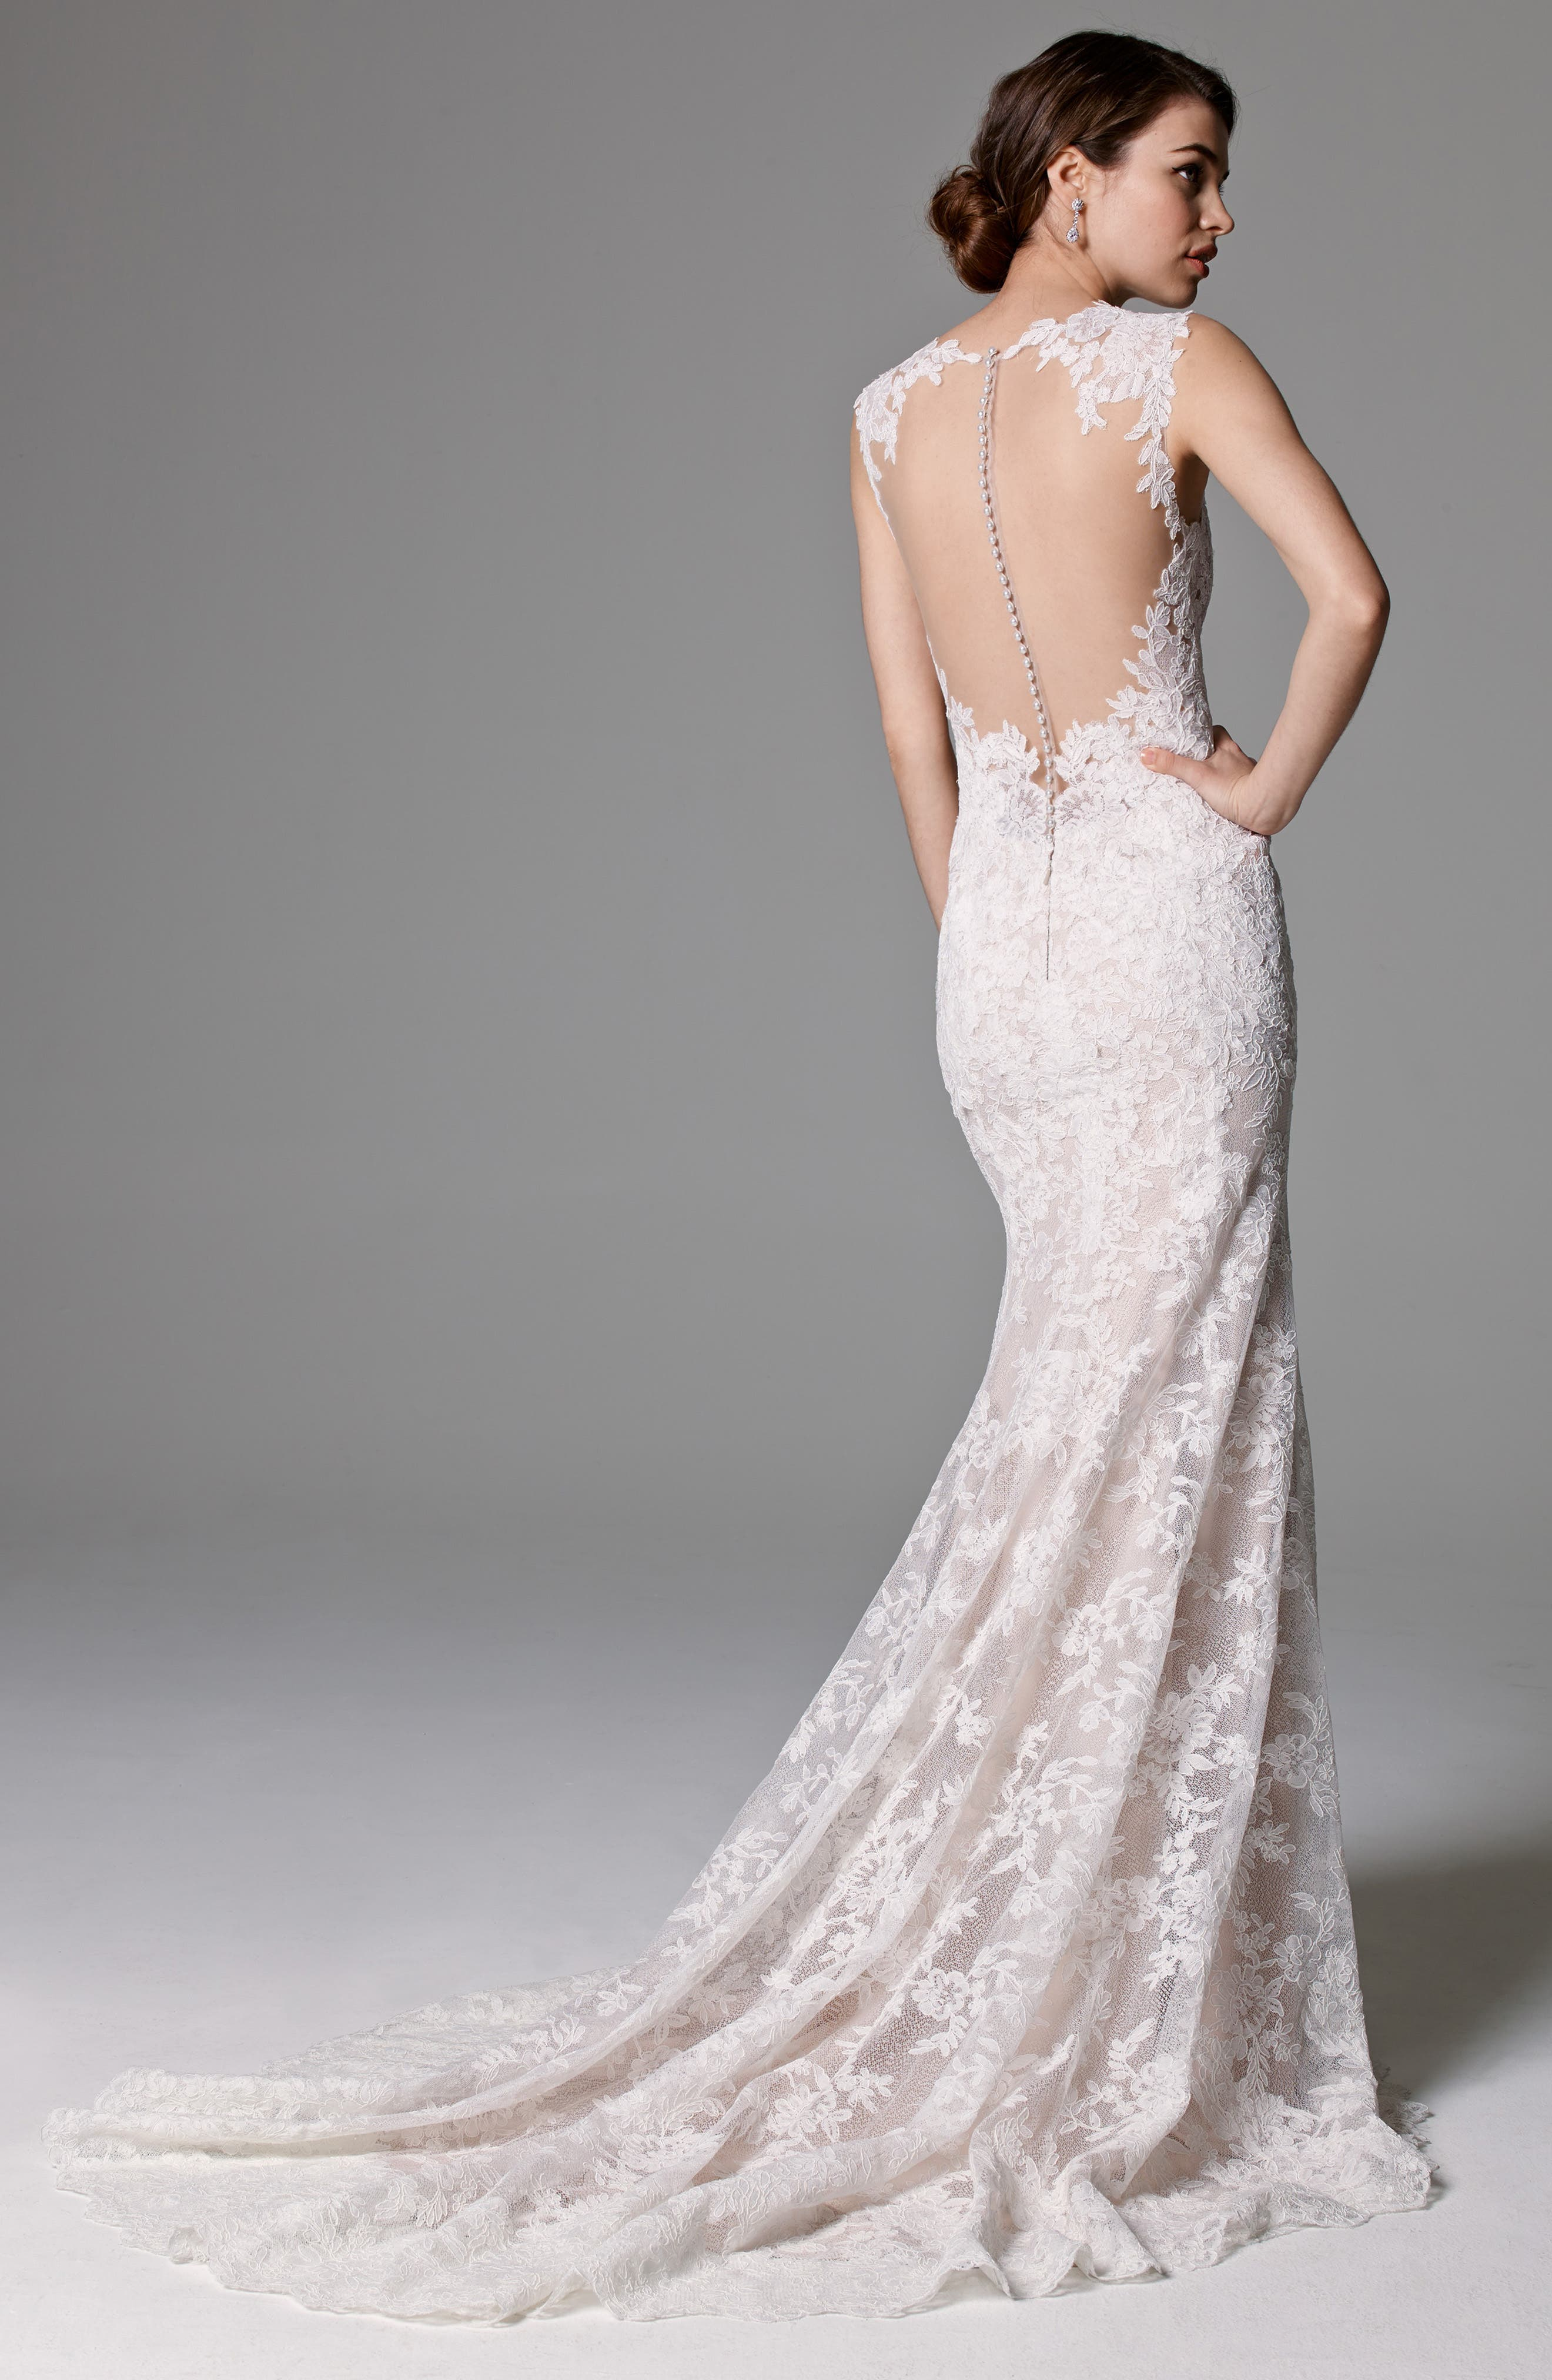 Ashland Lace Mermaid Gown,                             Alternate thumbnail 2, color,                             IVORY